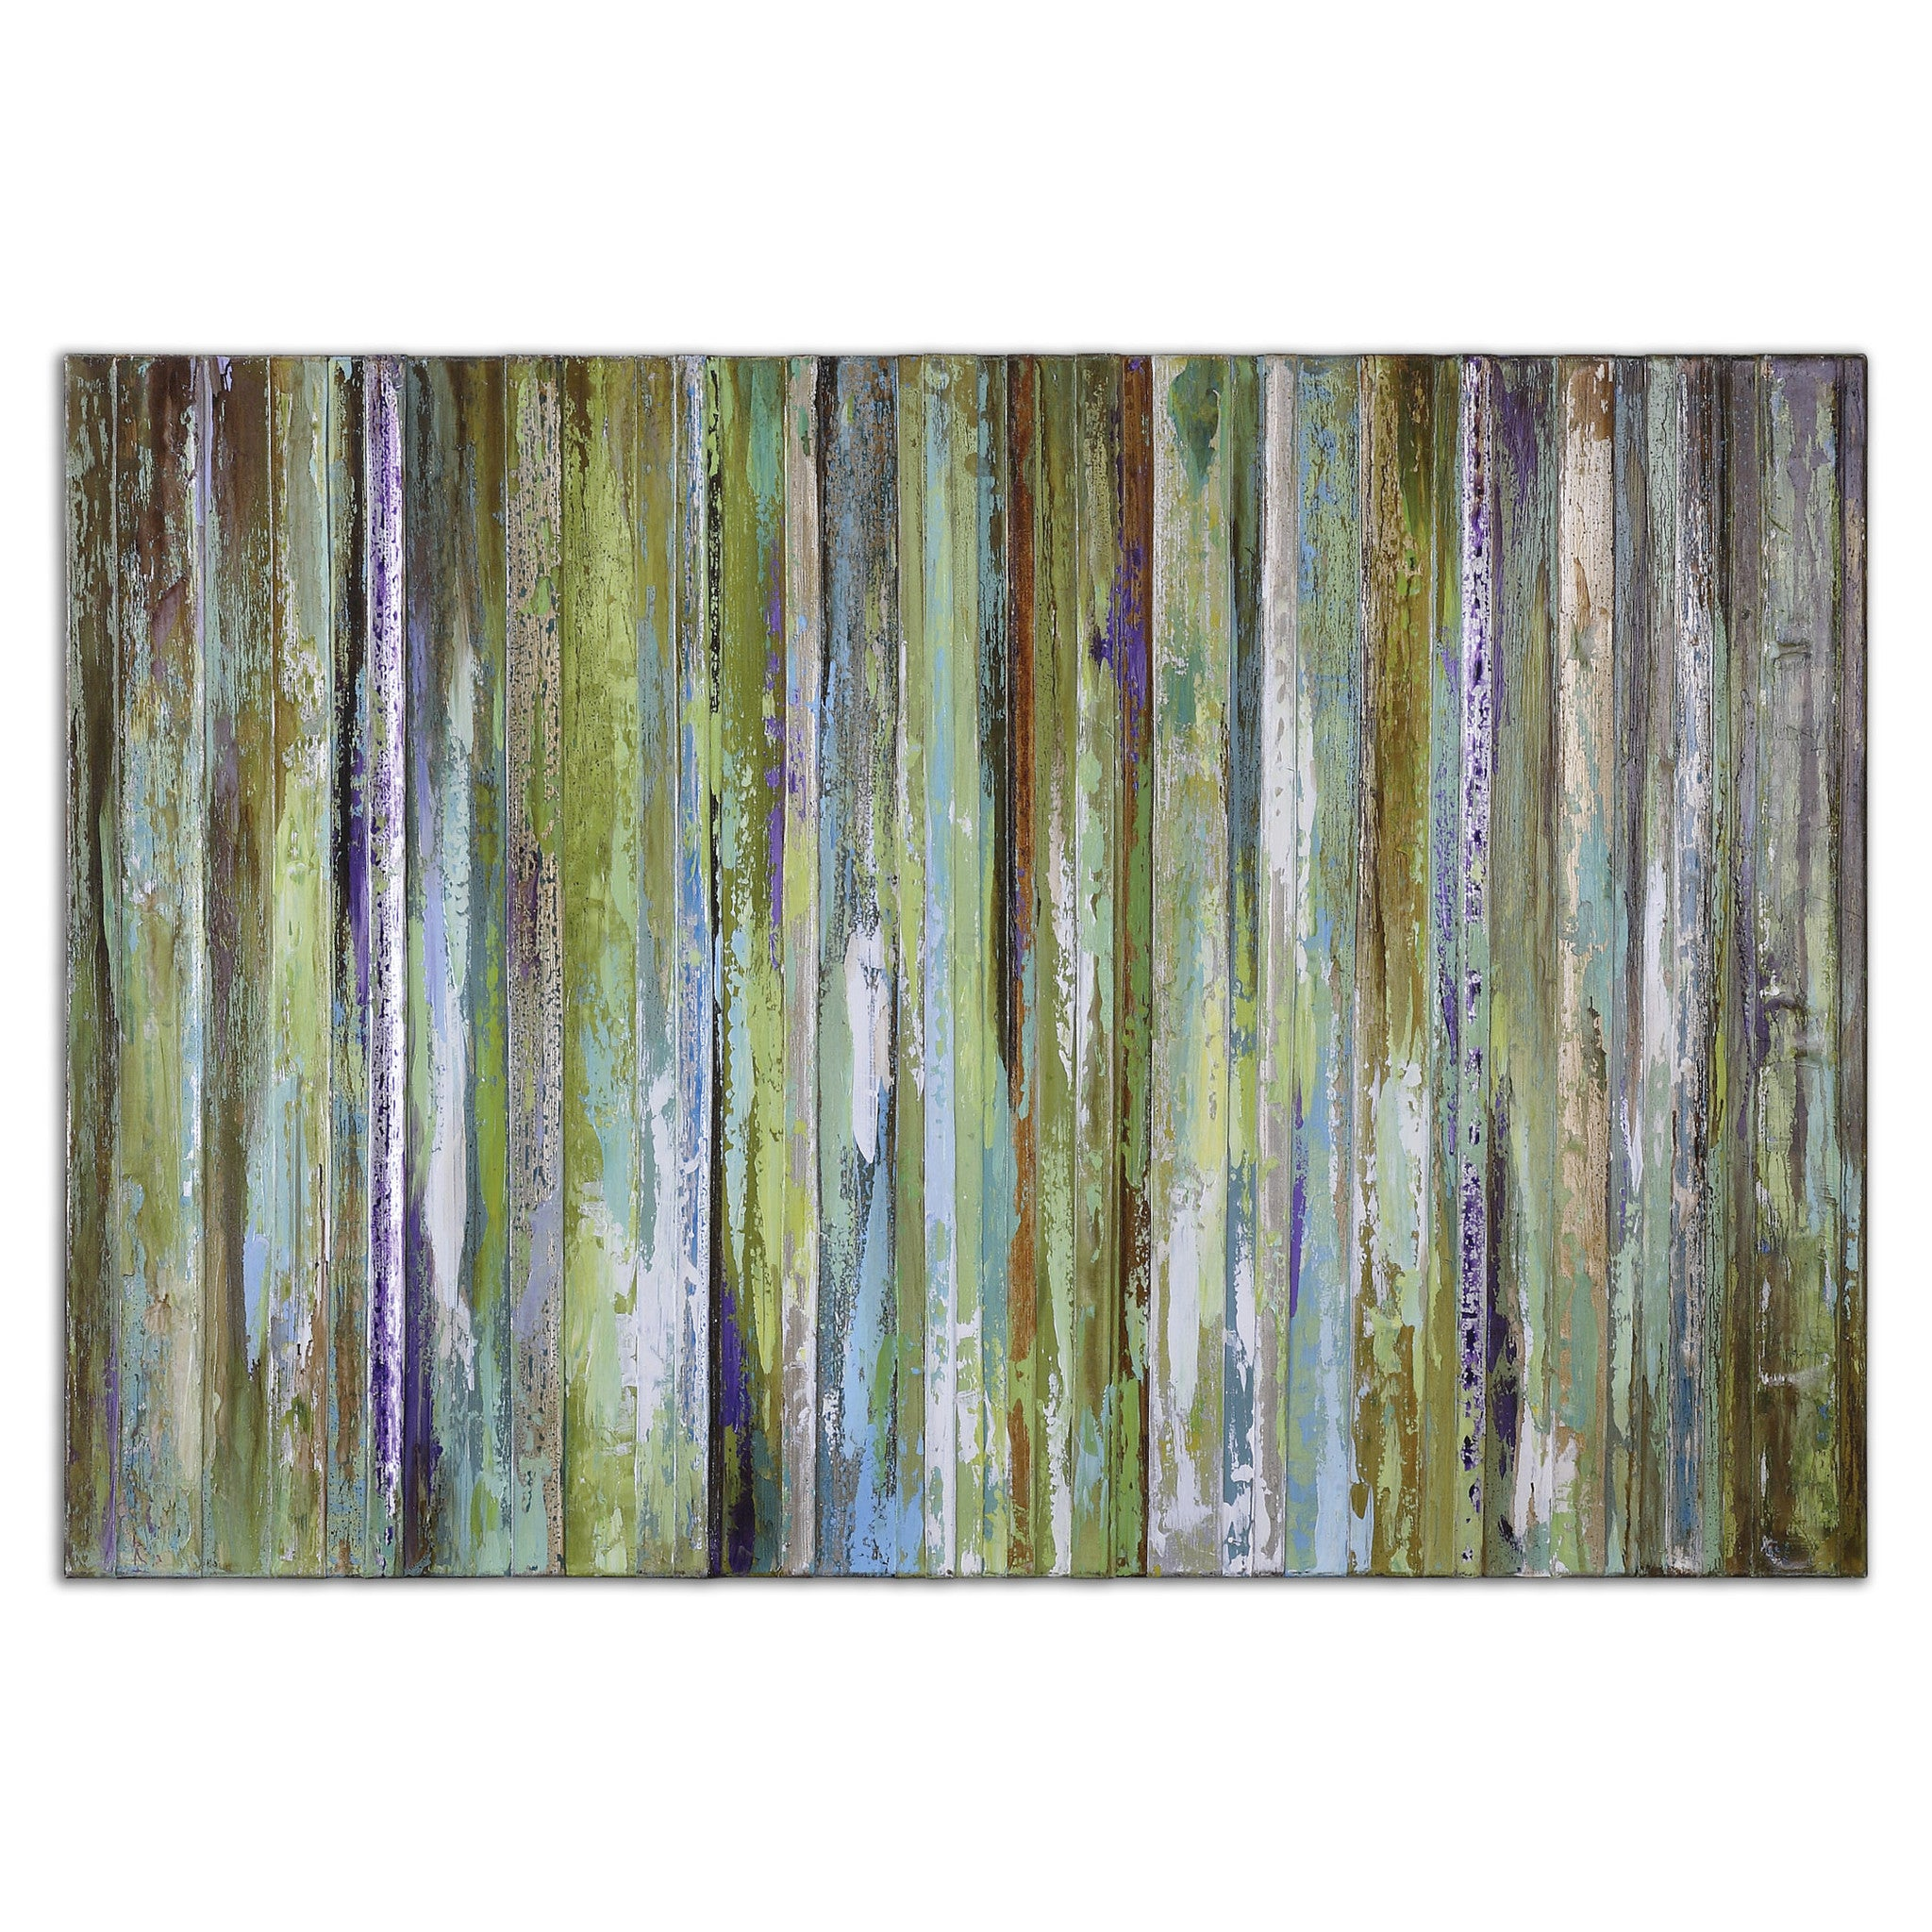 Abstract painting with streaks of green, blue, orange and white